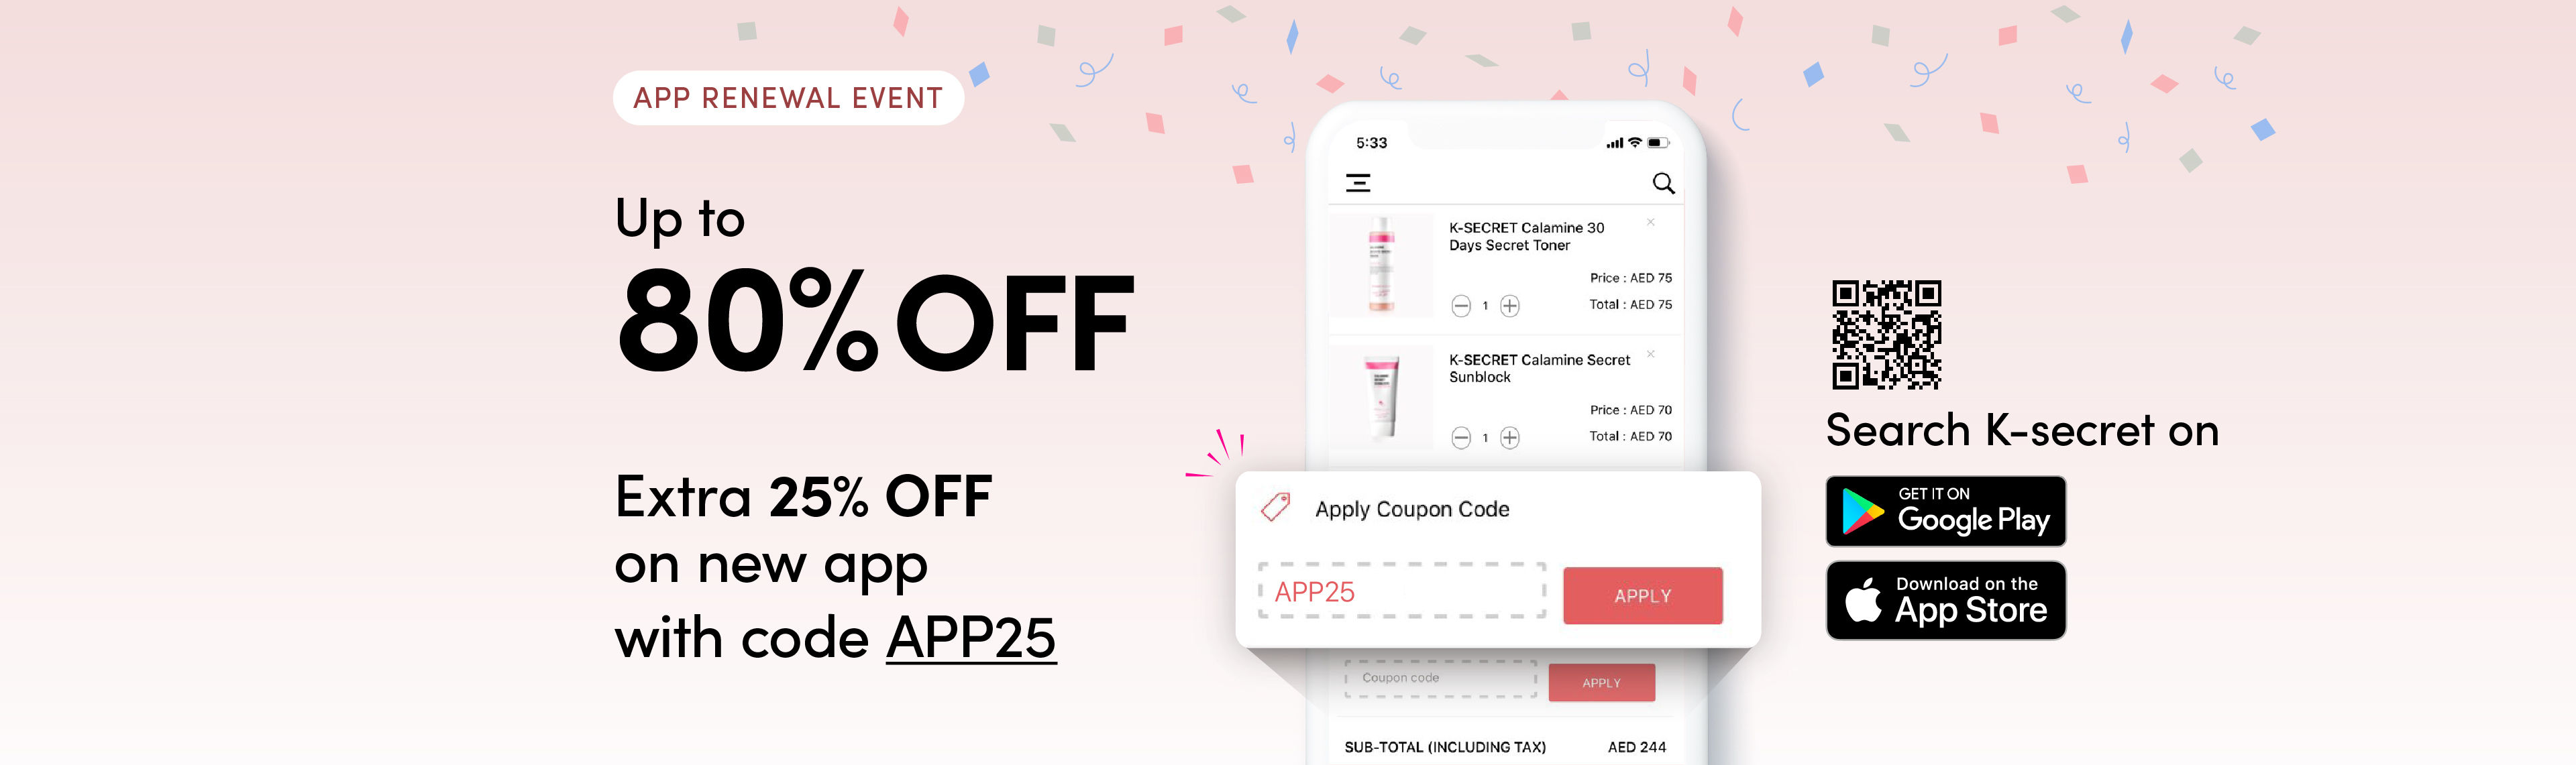 K beauty Skincare Offer